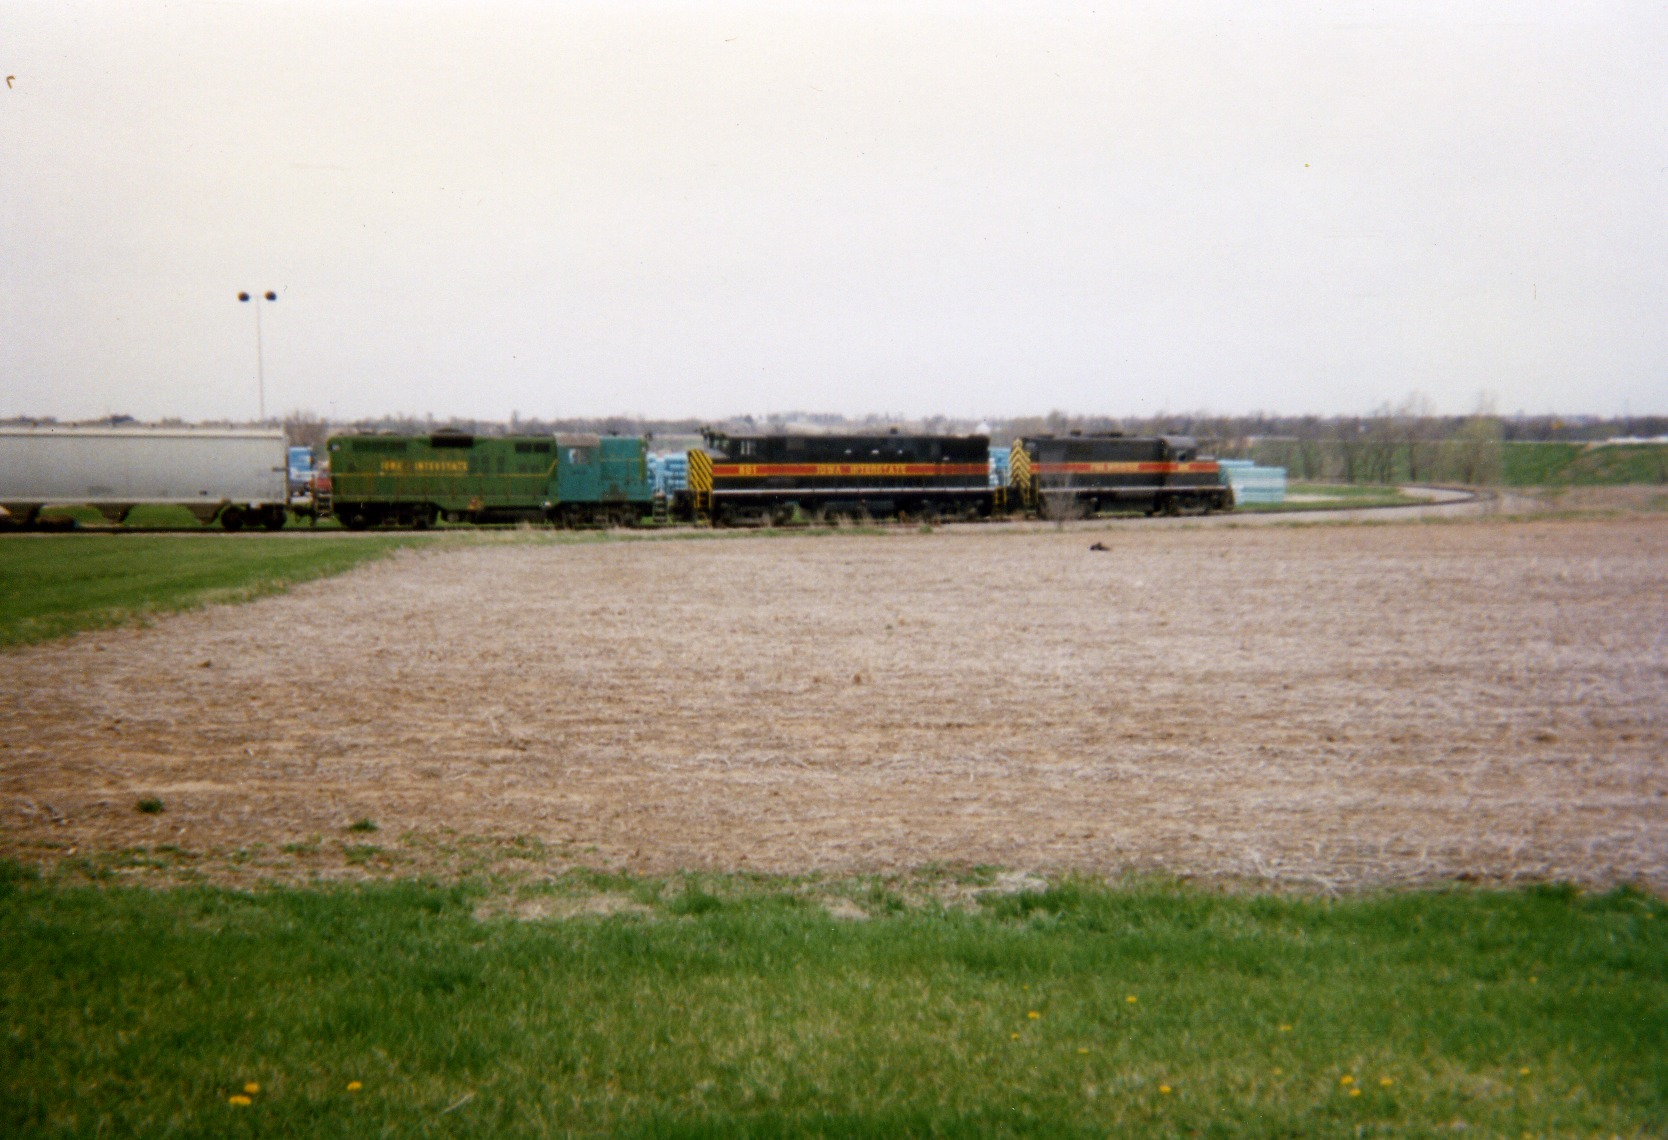 Perhaps the rarest consist ever seen on JM's spur, 900/801/303 switch the plant.  Sorry about the poor quality of this photo, but it's one of my favorites.  May 2, 1996.